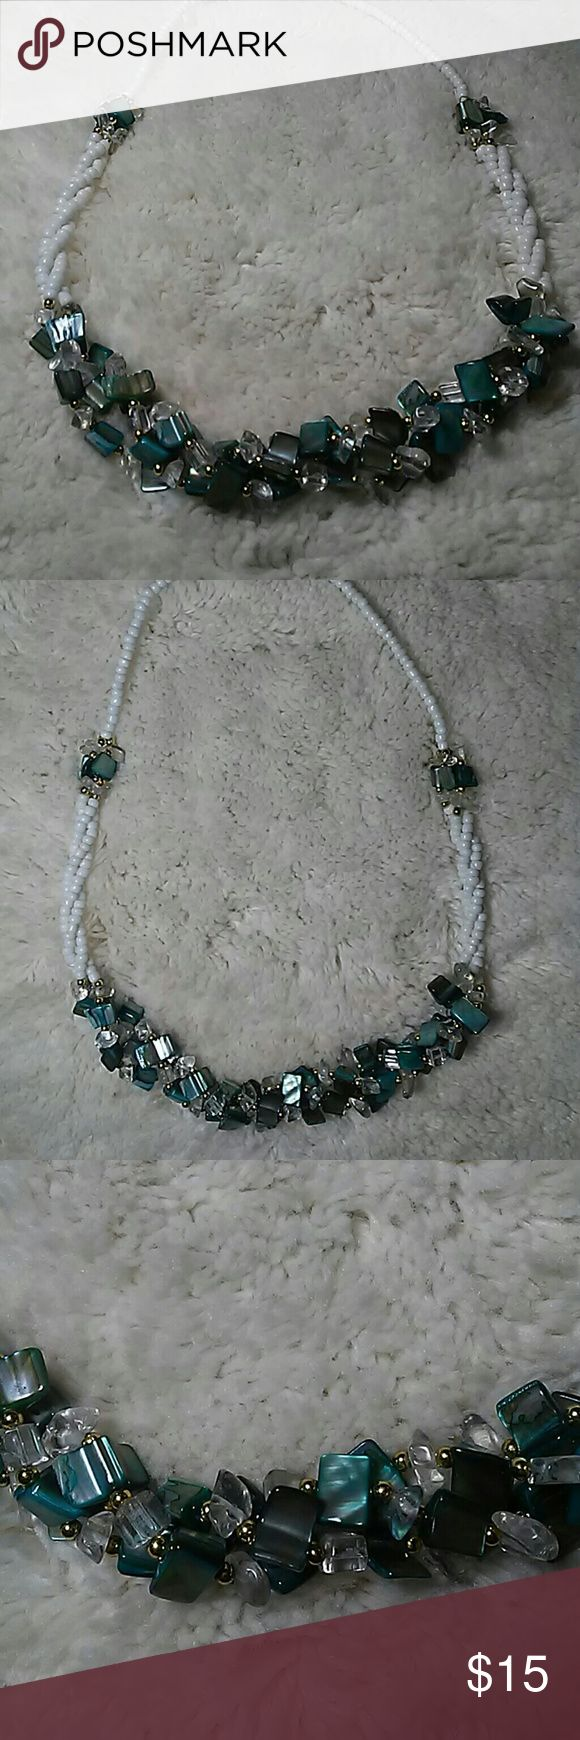 Handmade unique design blue and white necklace Blue and whiye necklace handmade unique design with blue and white beads new Jewelry Necklaces